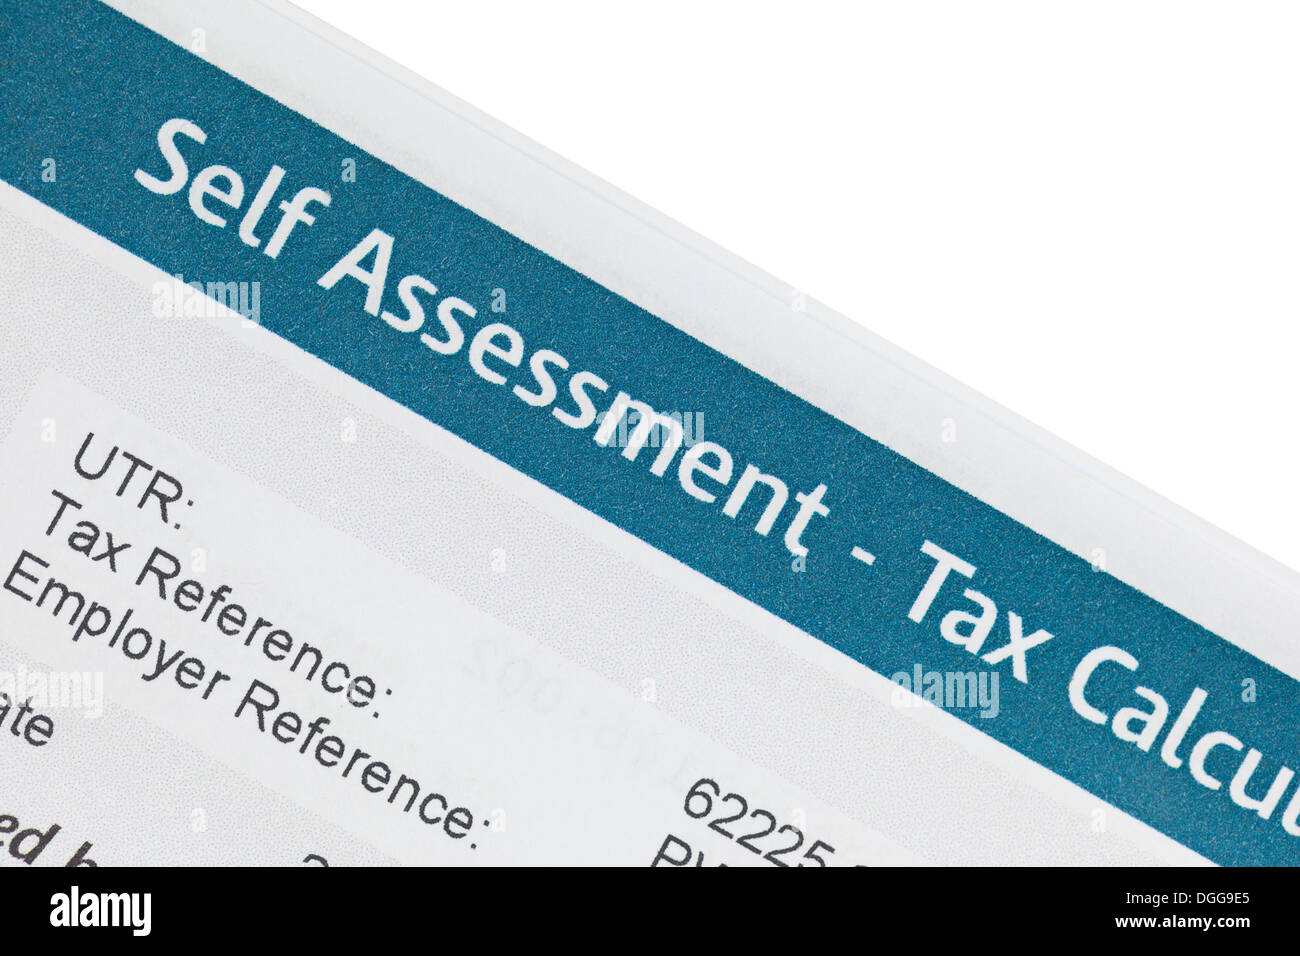 Self assessment tax calculation form - Stock Image